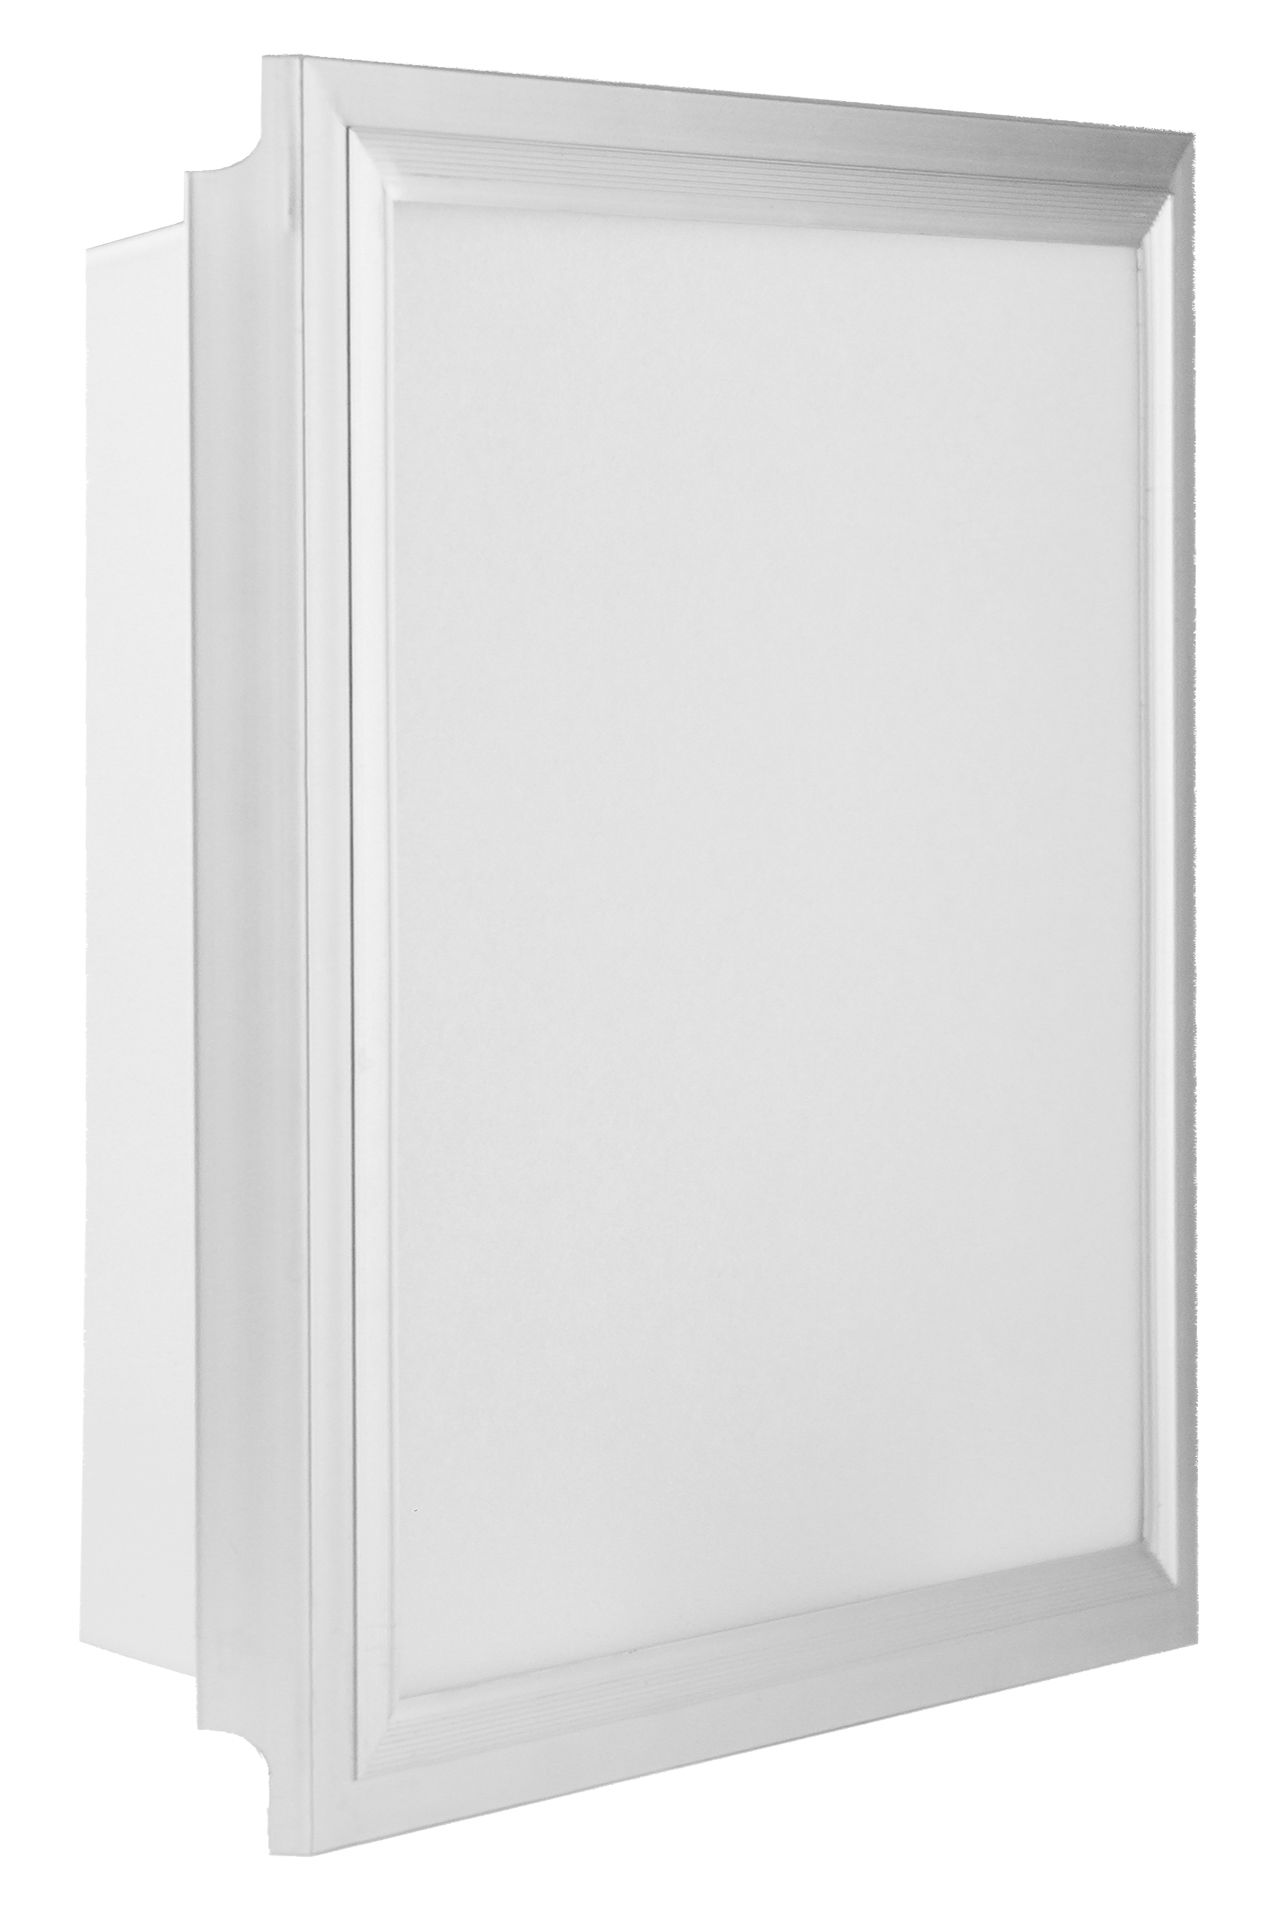 LED panel do podhledů 4500lm 4000K hluboký 6cm